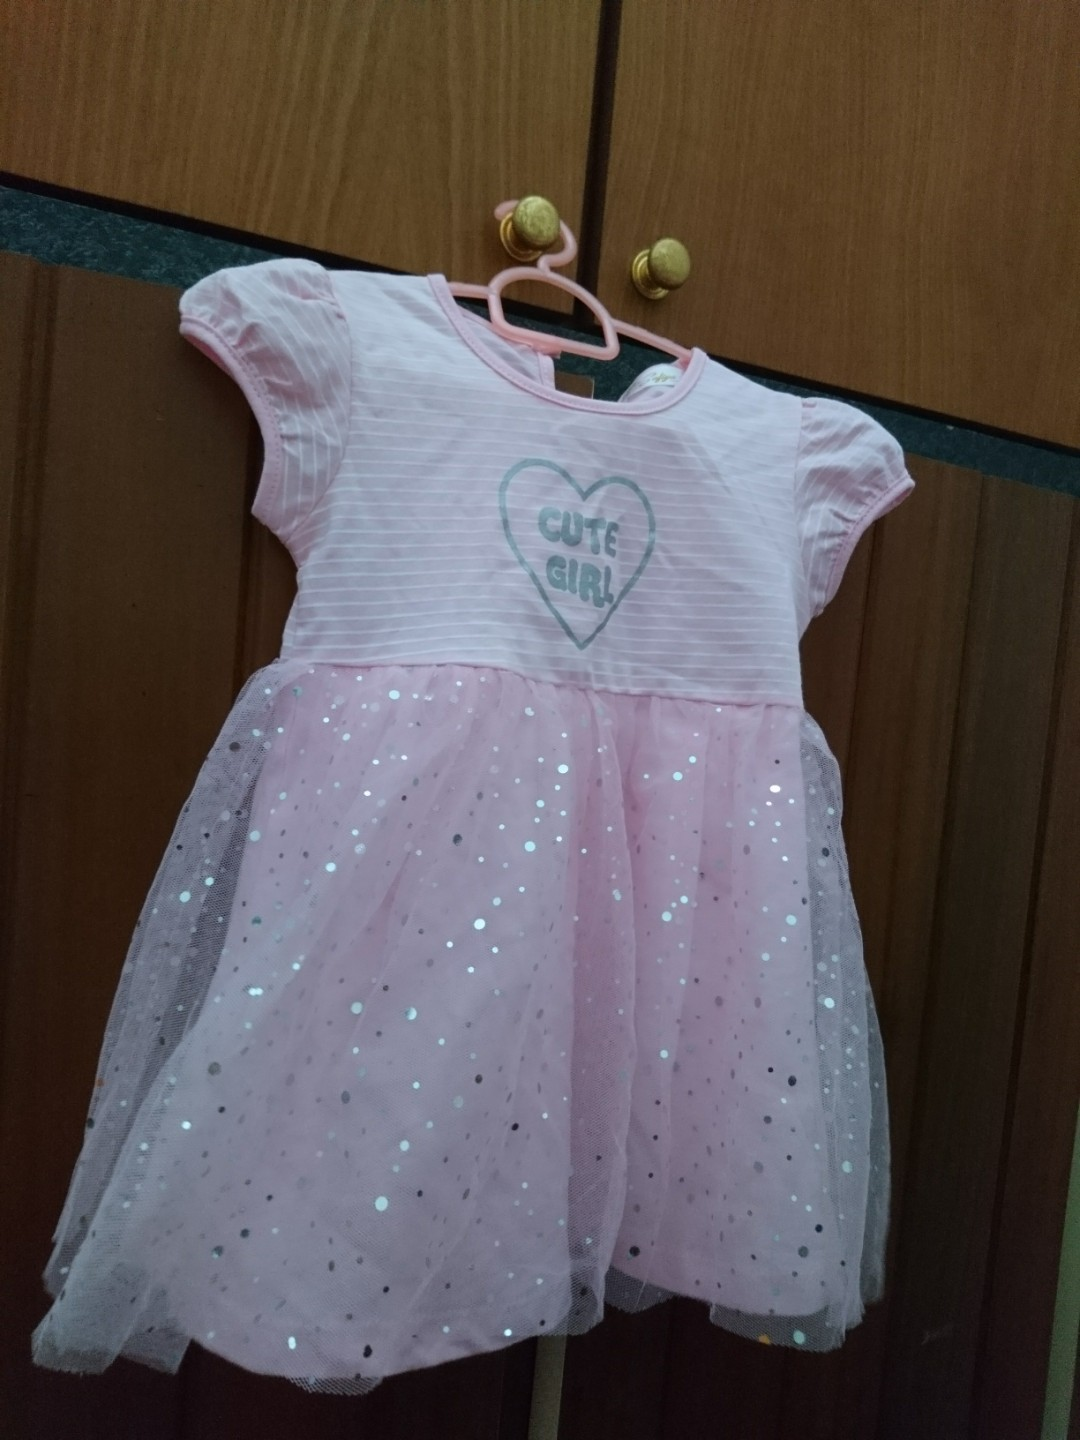 e8c4ad0097fe shopping 83689 fd327 bn baby girl dress for 18 months old babies ...